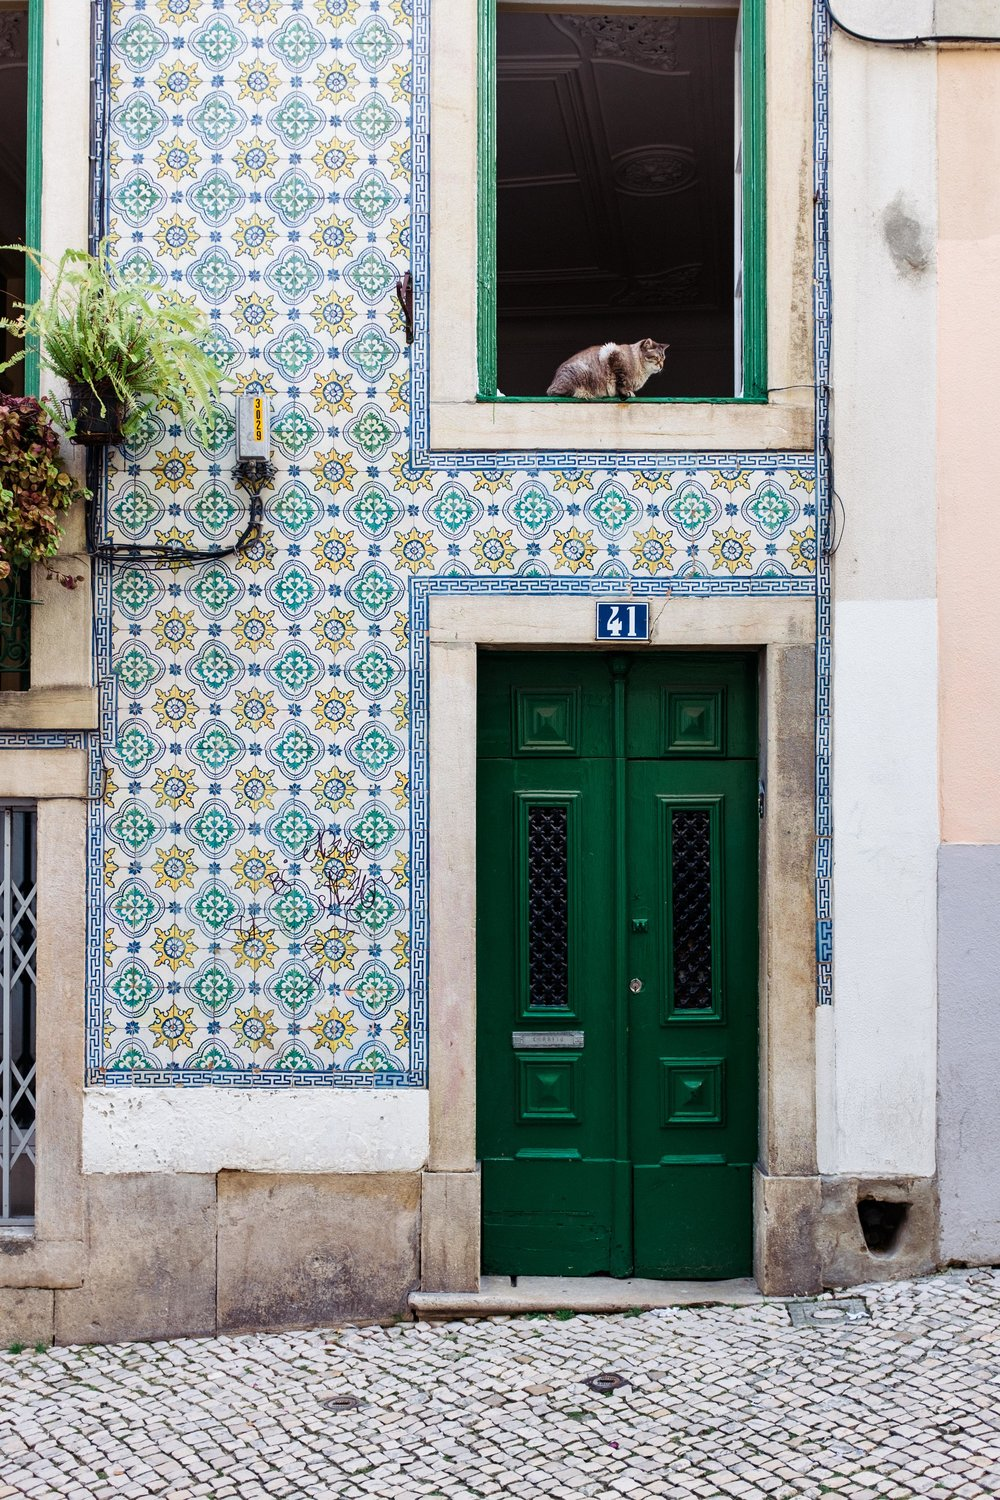 lisbon-portugal-cat-in-window